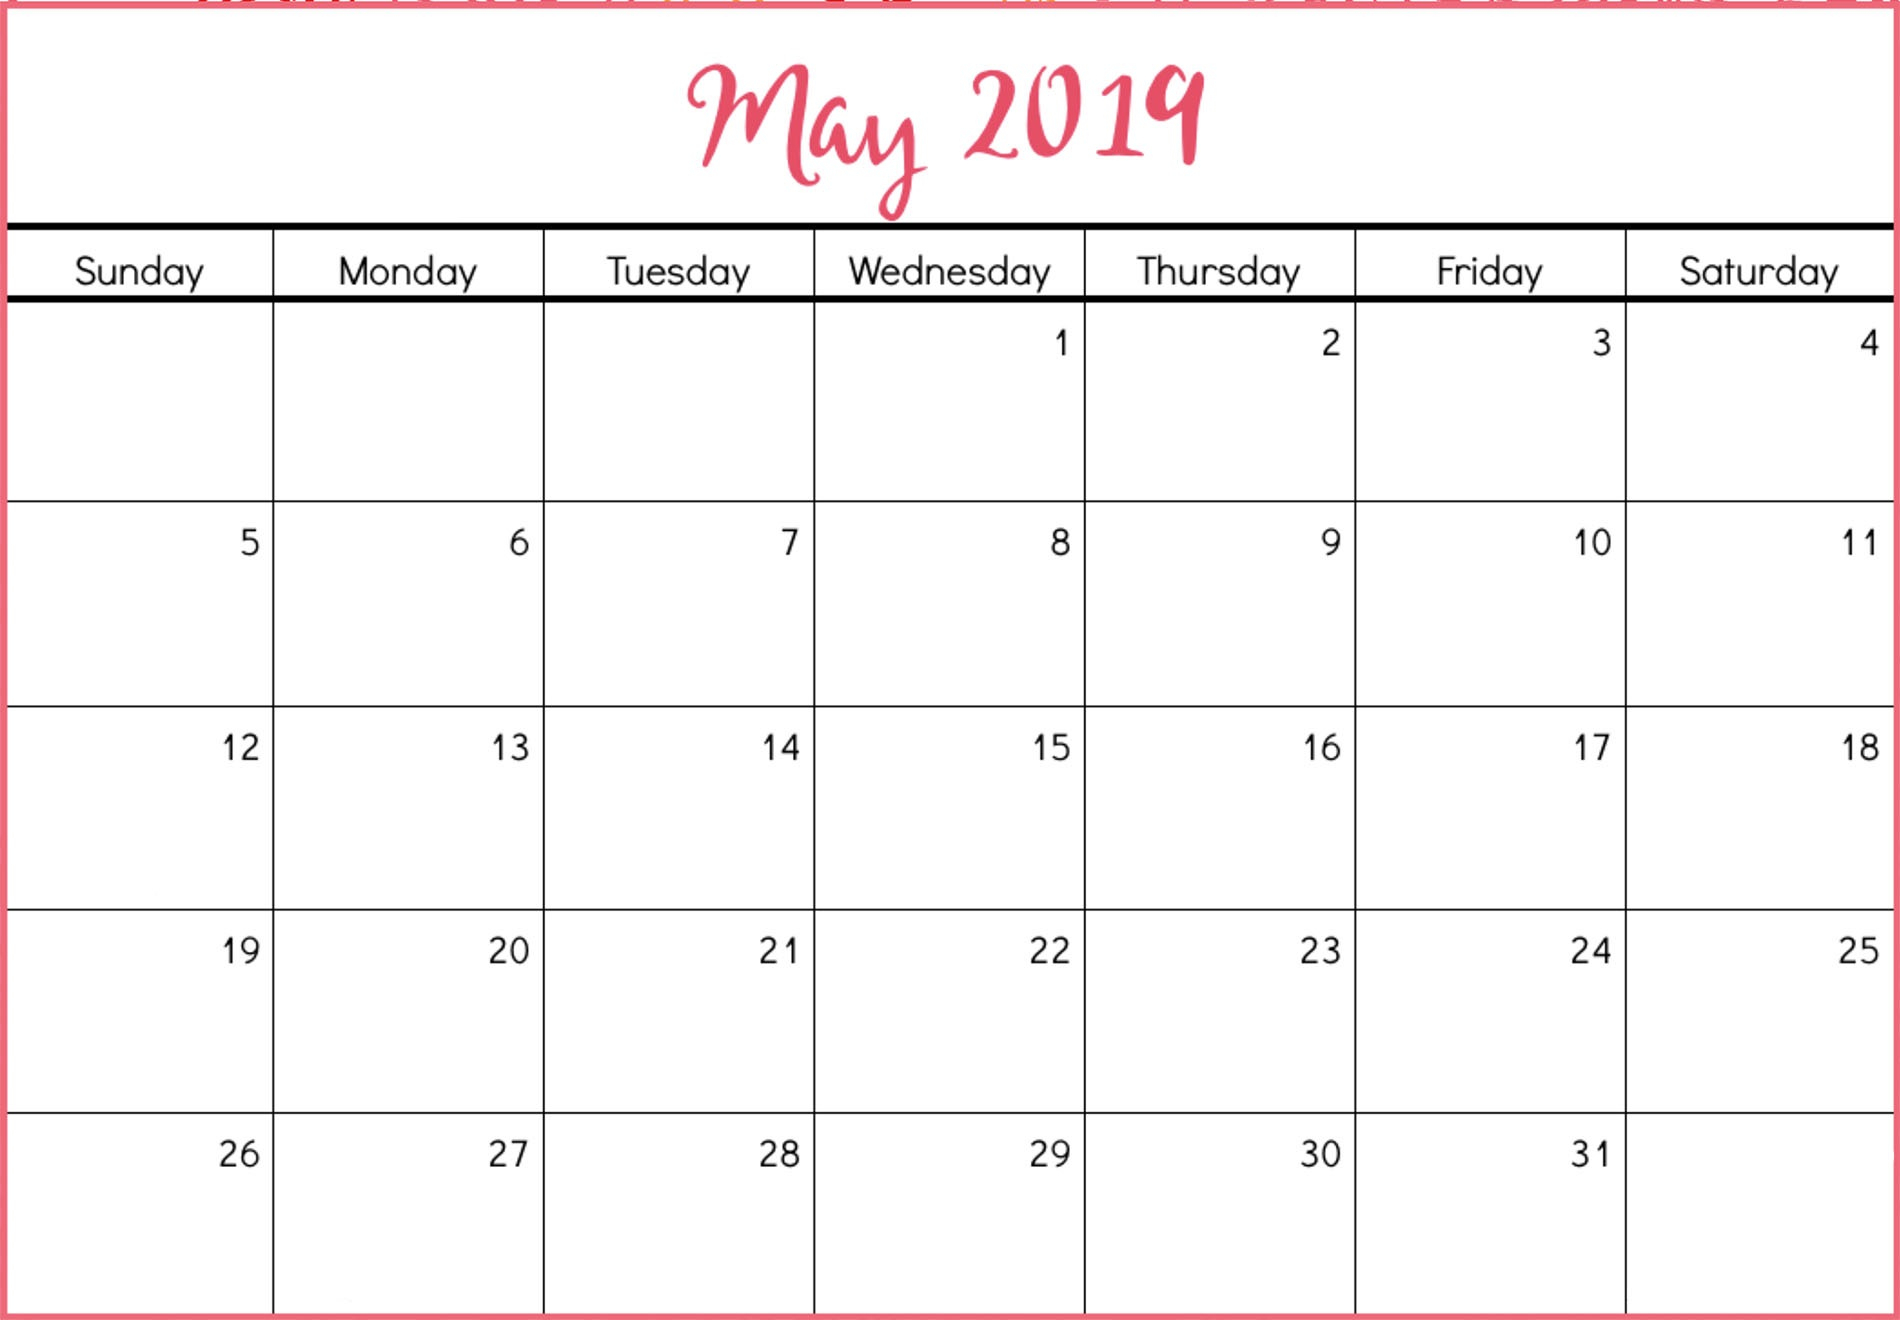 May 2019 Calendar Template Printable Blank With Editable Notes inside Cute Printable Blank Calendar Template